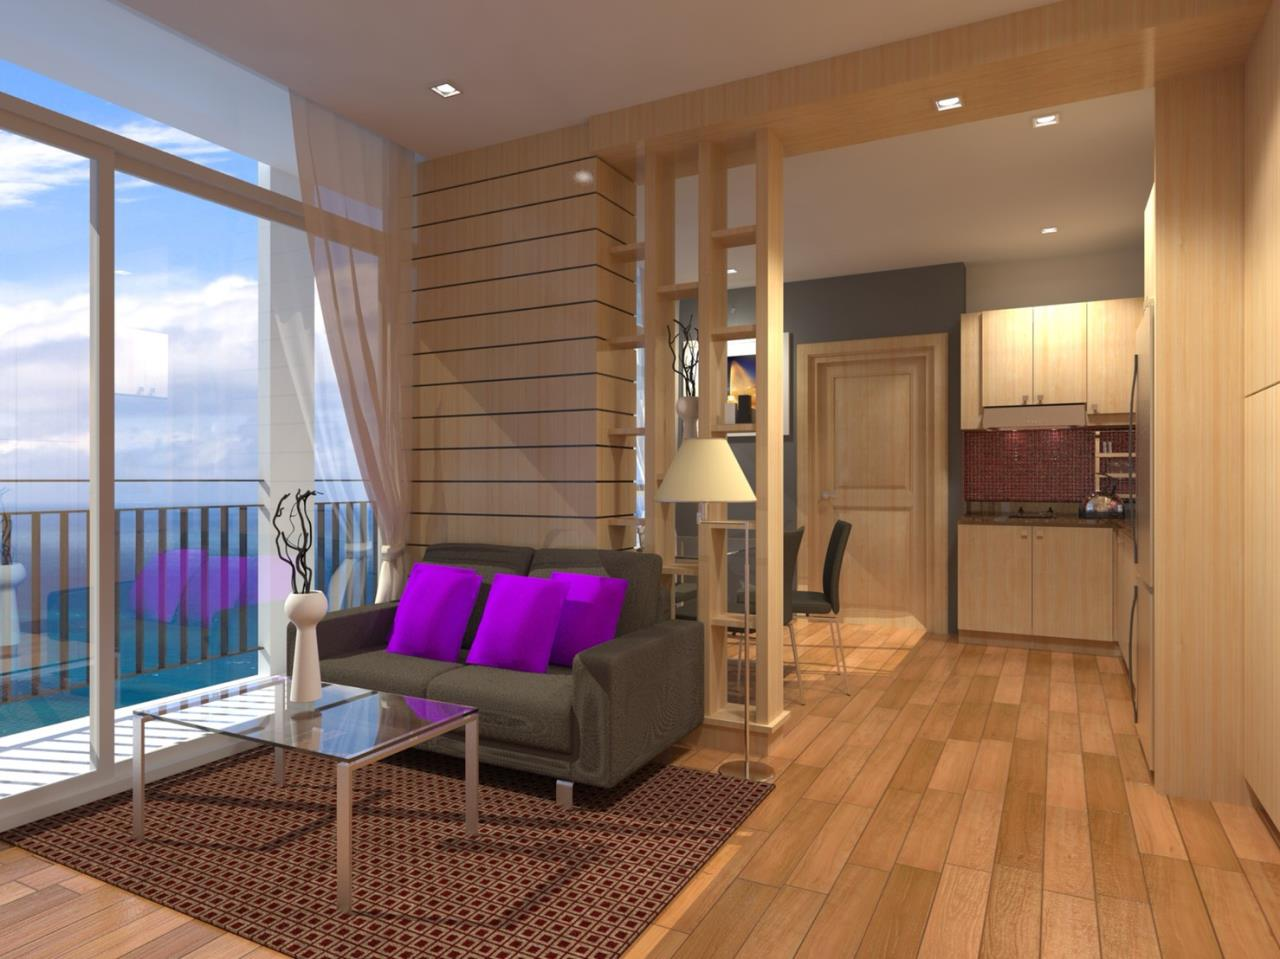 Signature Realty ( Thailand ) Co Ltd Agency's Furnished 2bedroom 58 sq.m condo with jacuzzi floor 2-10 at The Grand Jomtein Beach Pattaya 31